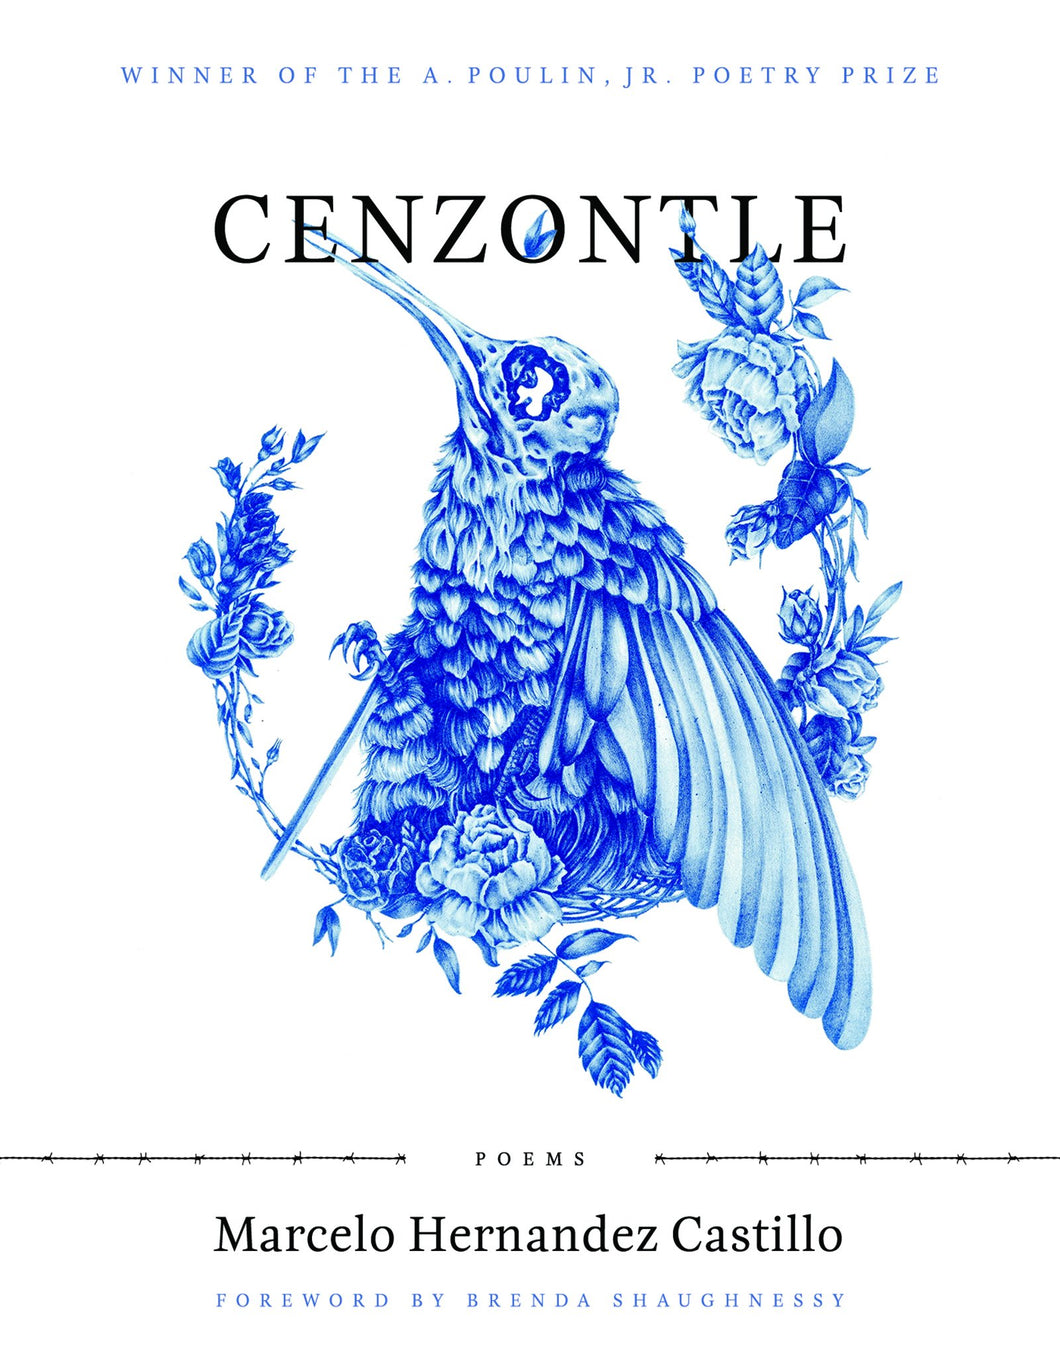 Cenzontle by Marcelo Hernandez Castillo